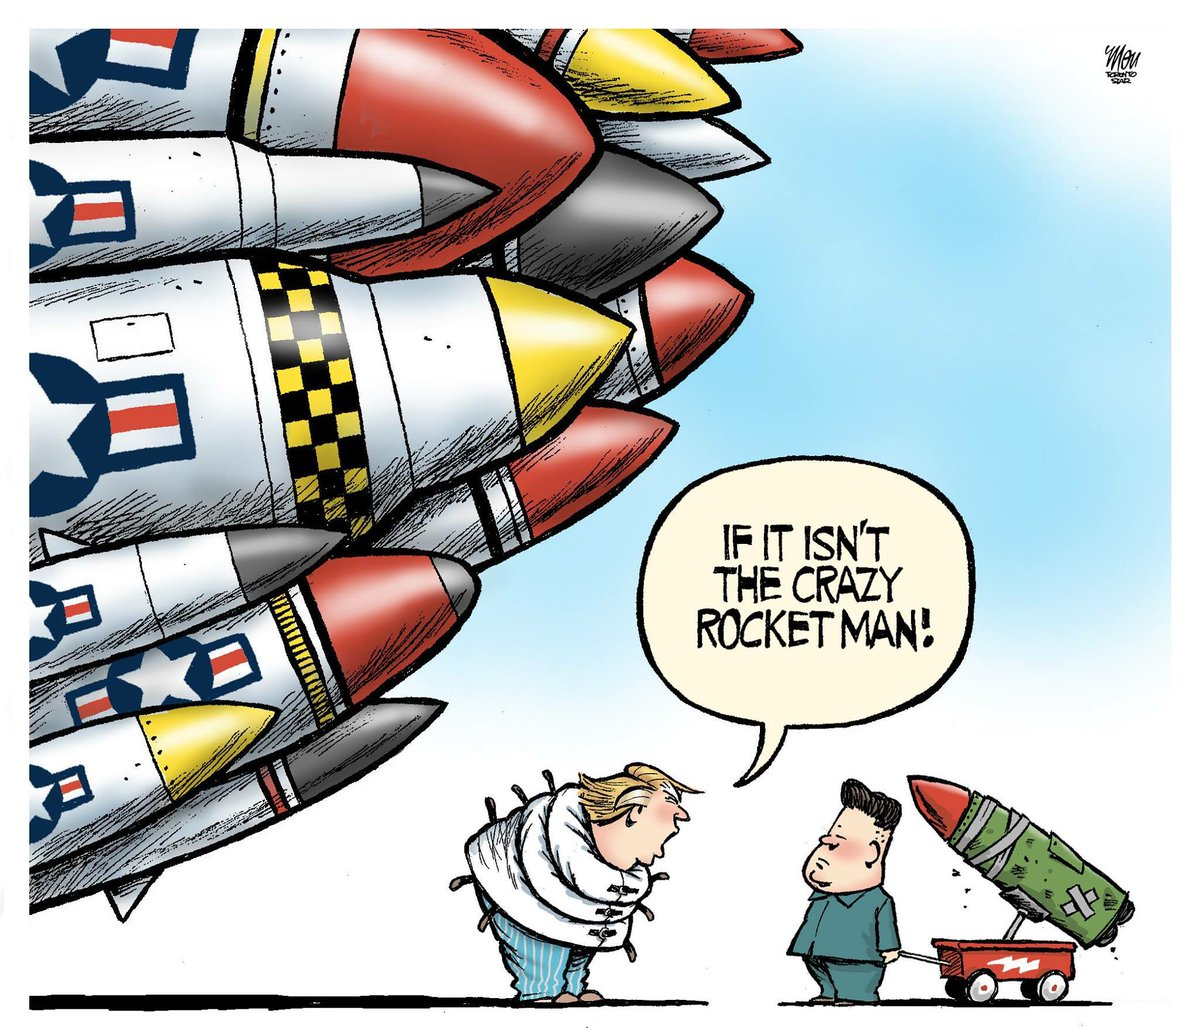 RESIST #Neoliberalism&#39;s Psycho-#Economics &amp; #Neocon #War; as #USA&#39;s airplanes fly near #NK&#39;s coast in show of force! #TakeAKnee #JaiBastille<br>http://pic.twitter.com/YFHYnyTgS1